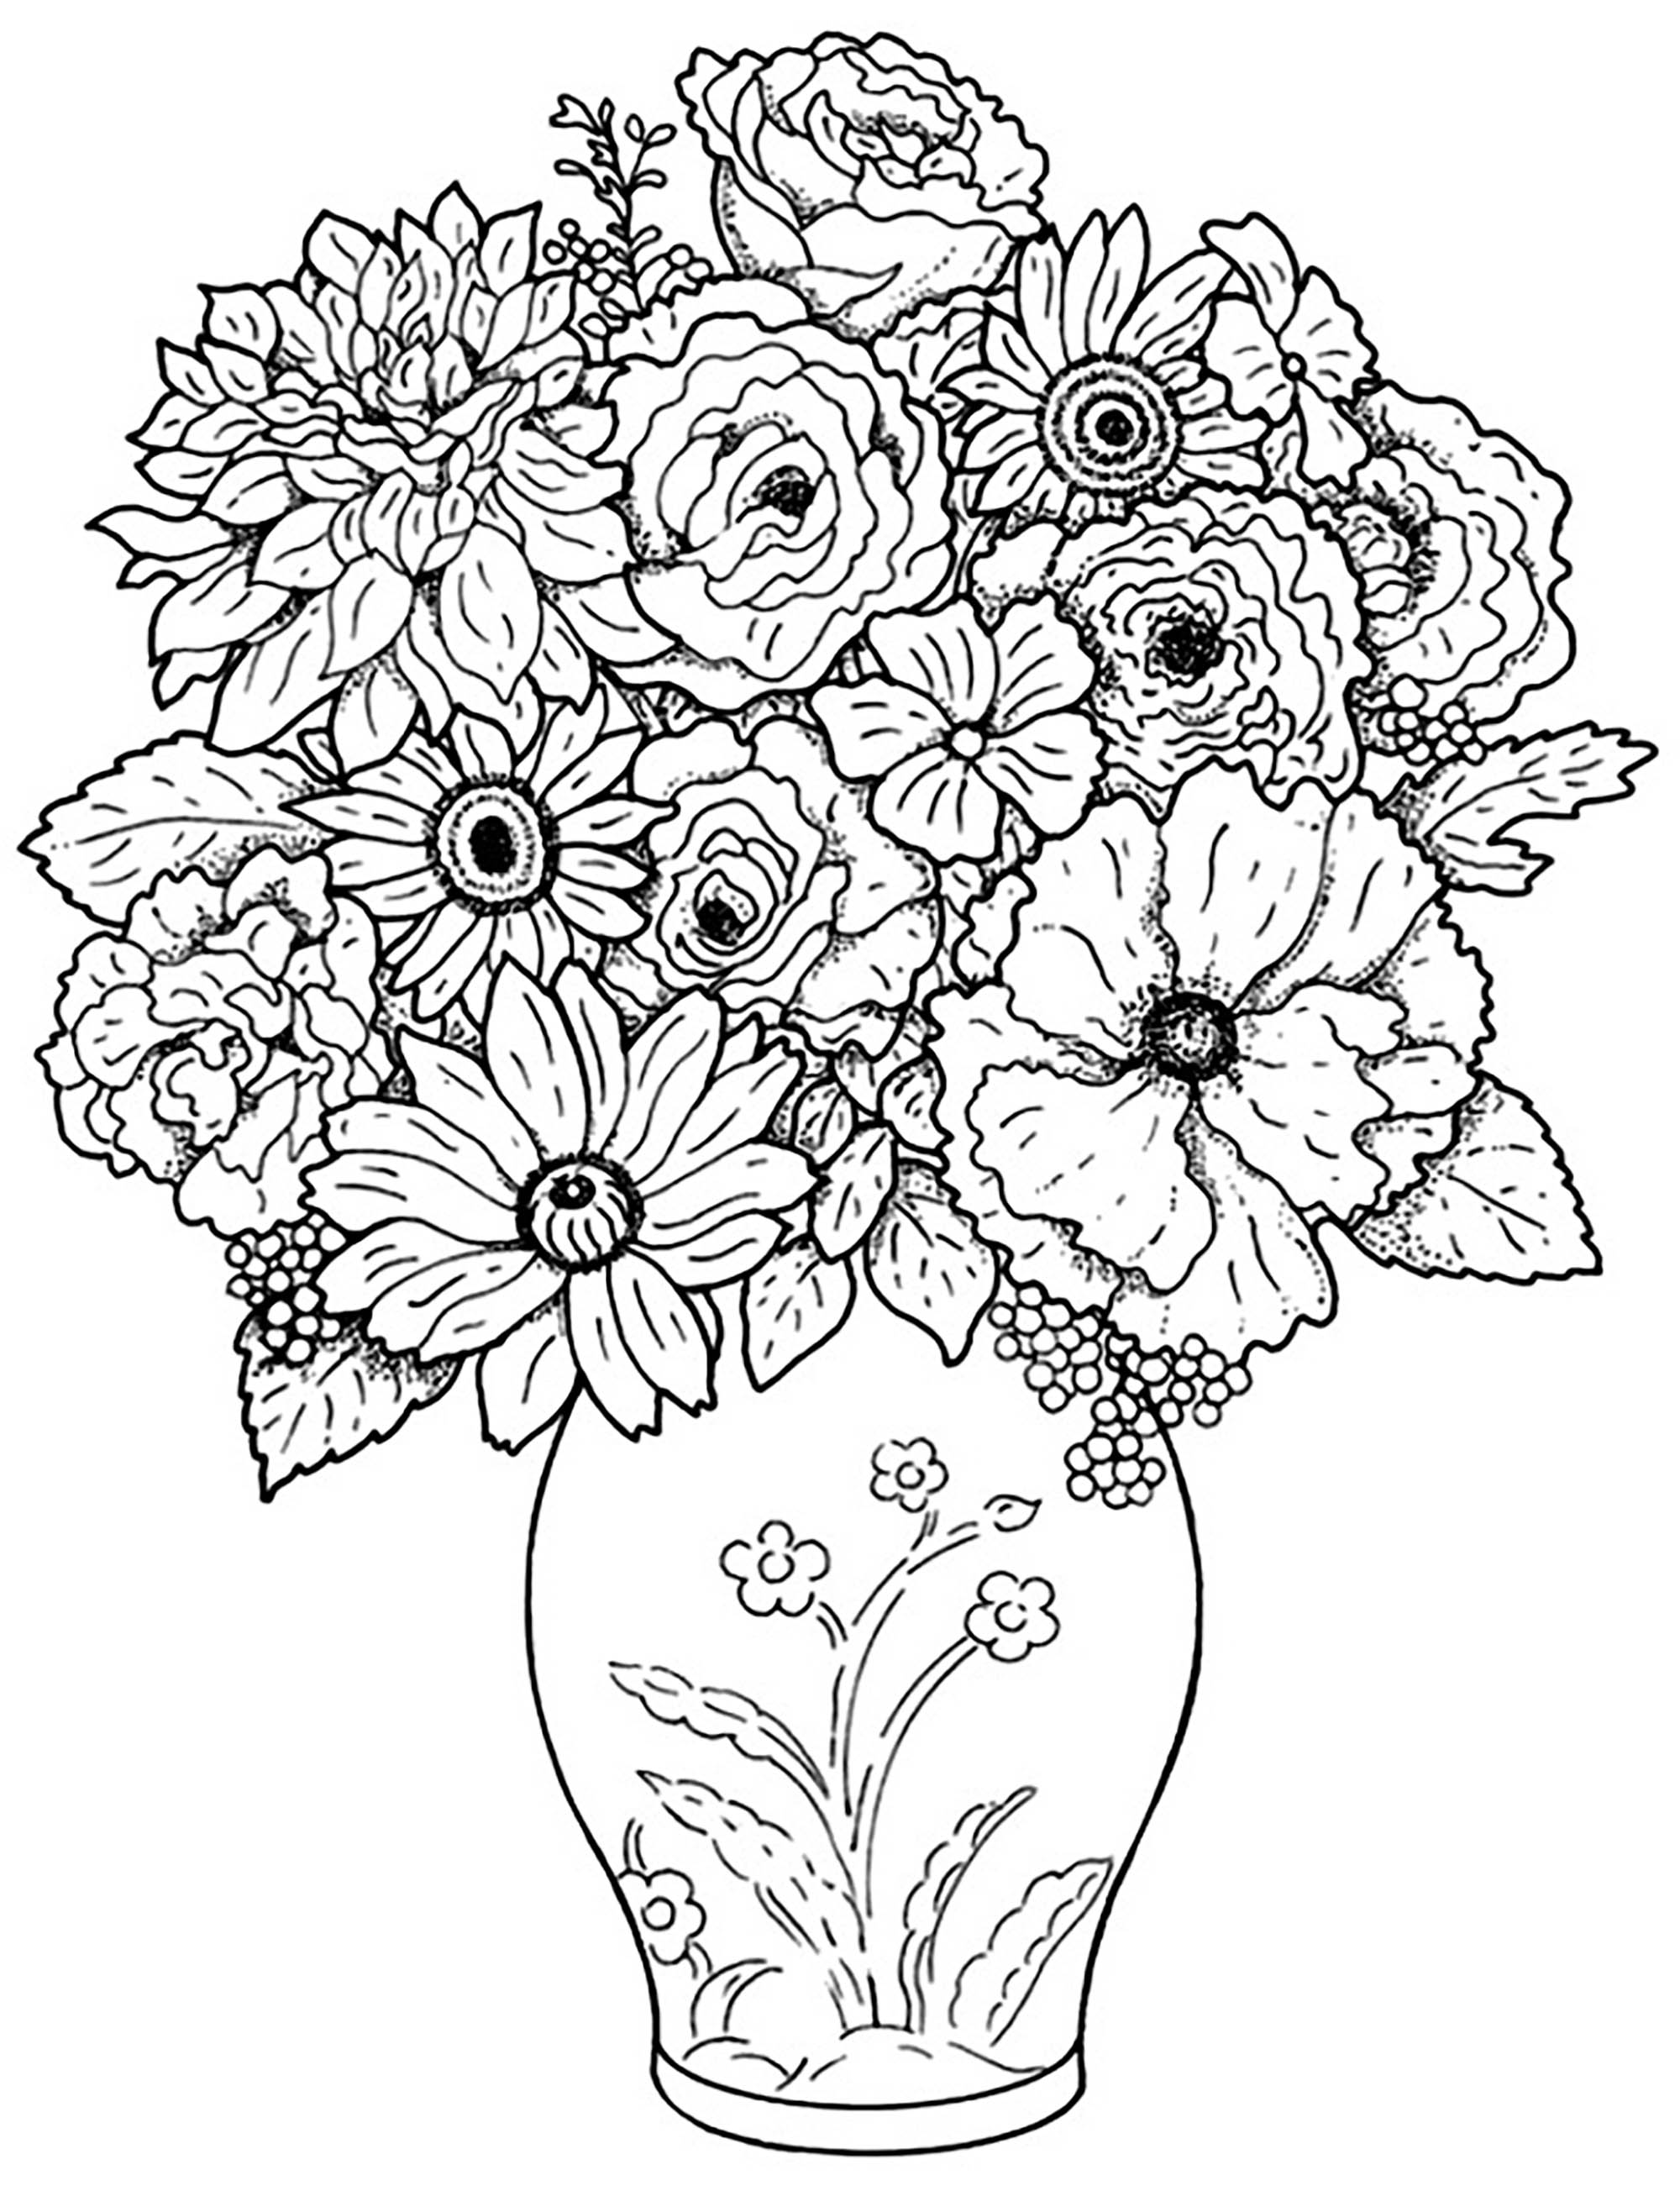 flower pictures coloring pages free printable flower coloring pages for kids best coloring pages pictures flower